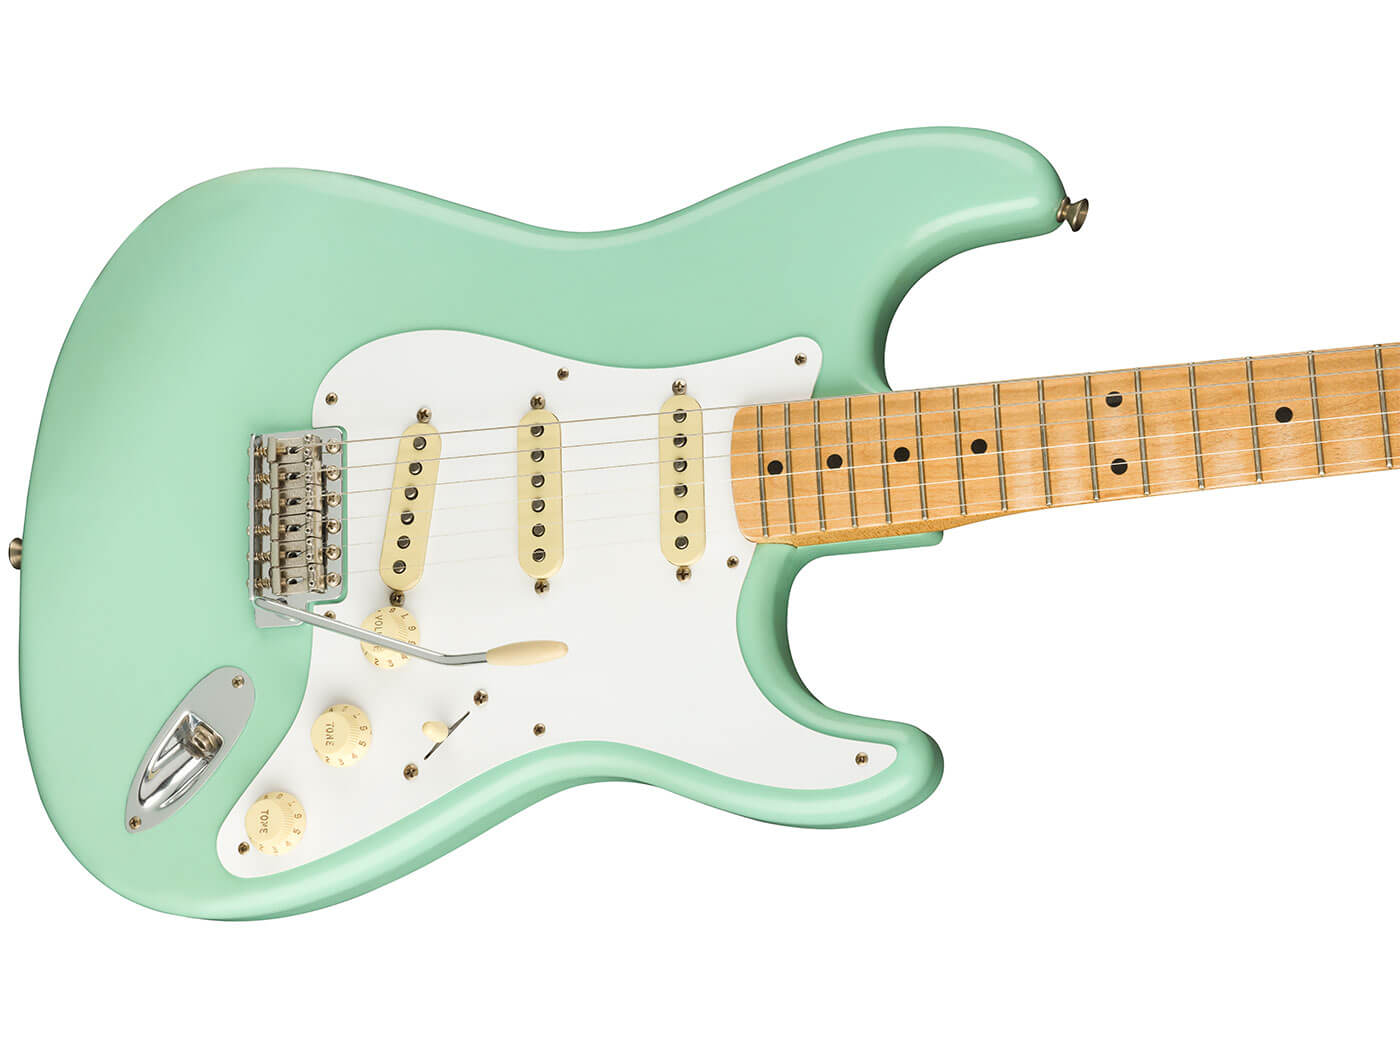 The '50s Strat in Surf Green